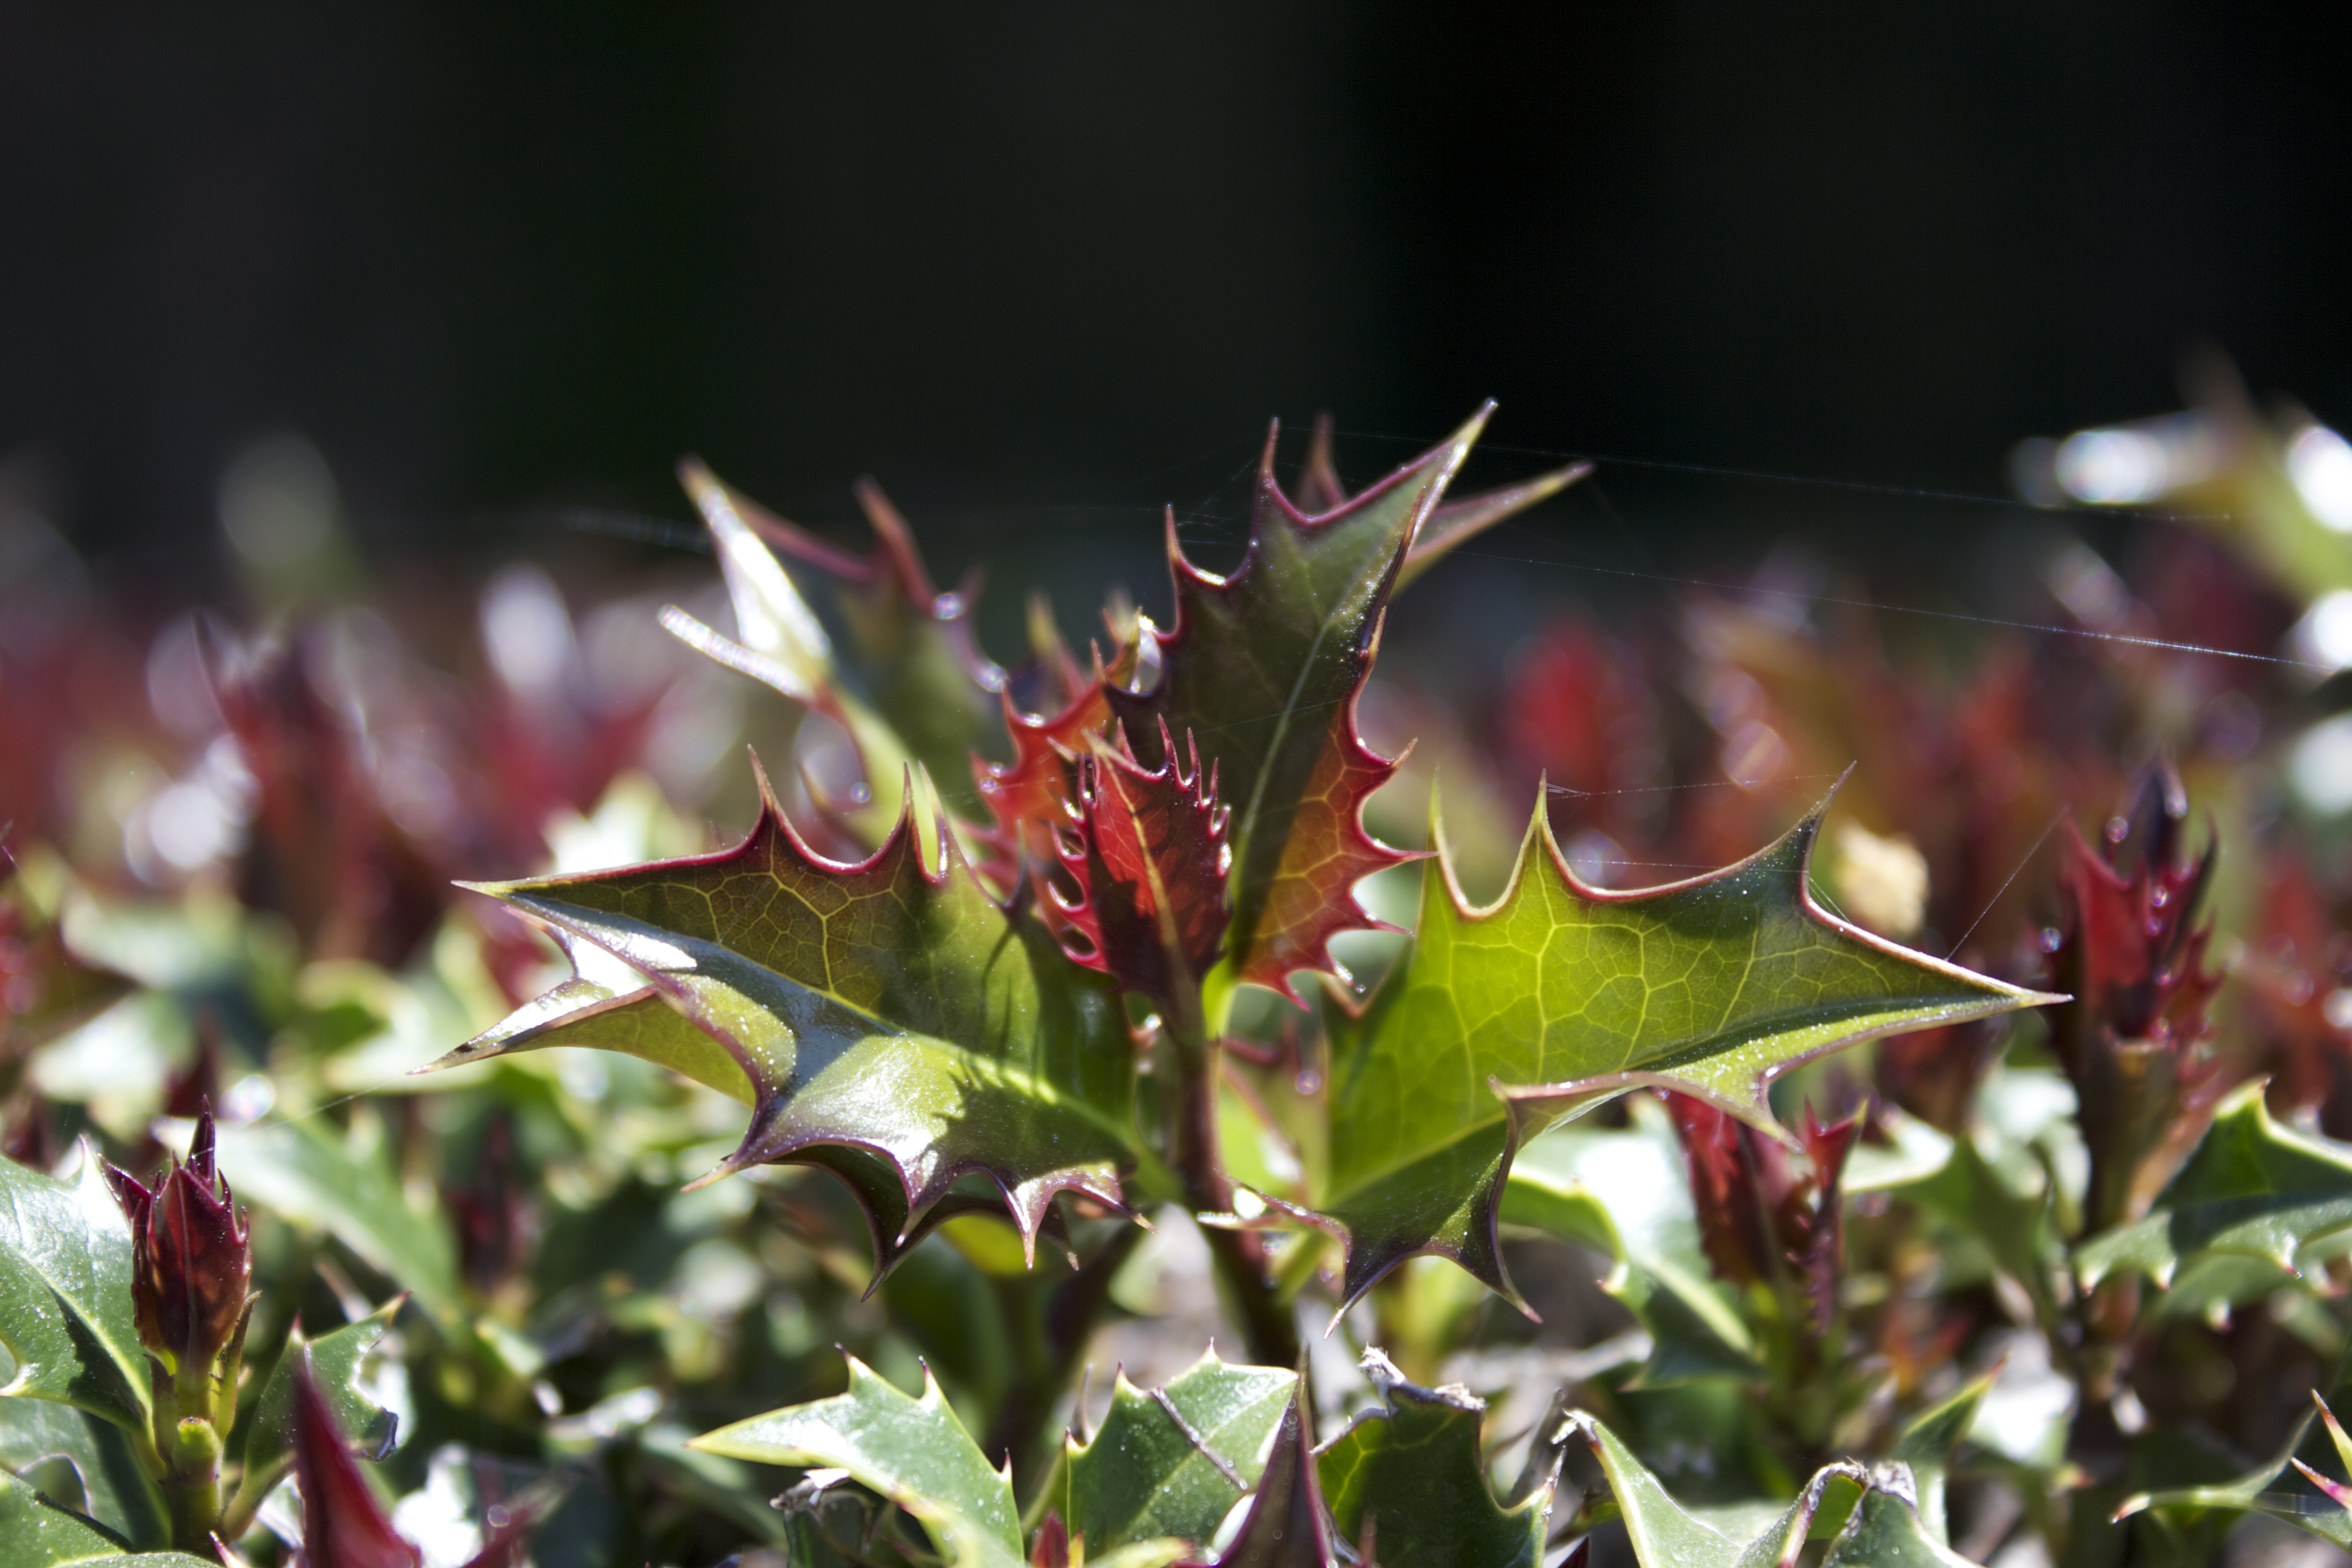 Closeup of spiky green and red leaves on a bush resembling holly (though I'm not sure that's what it is).